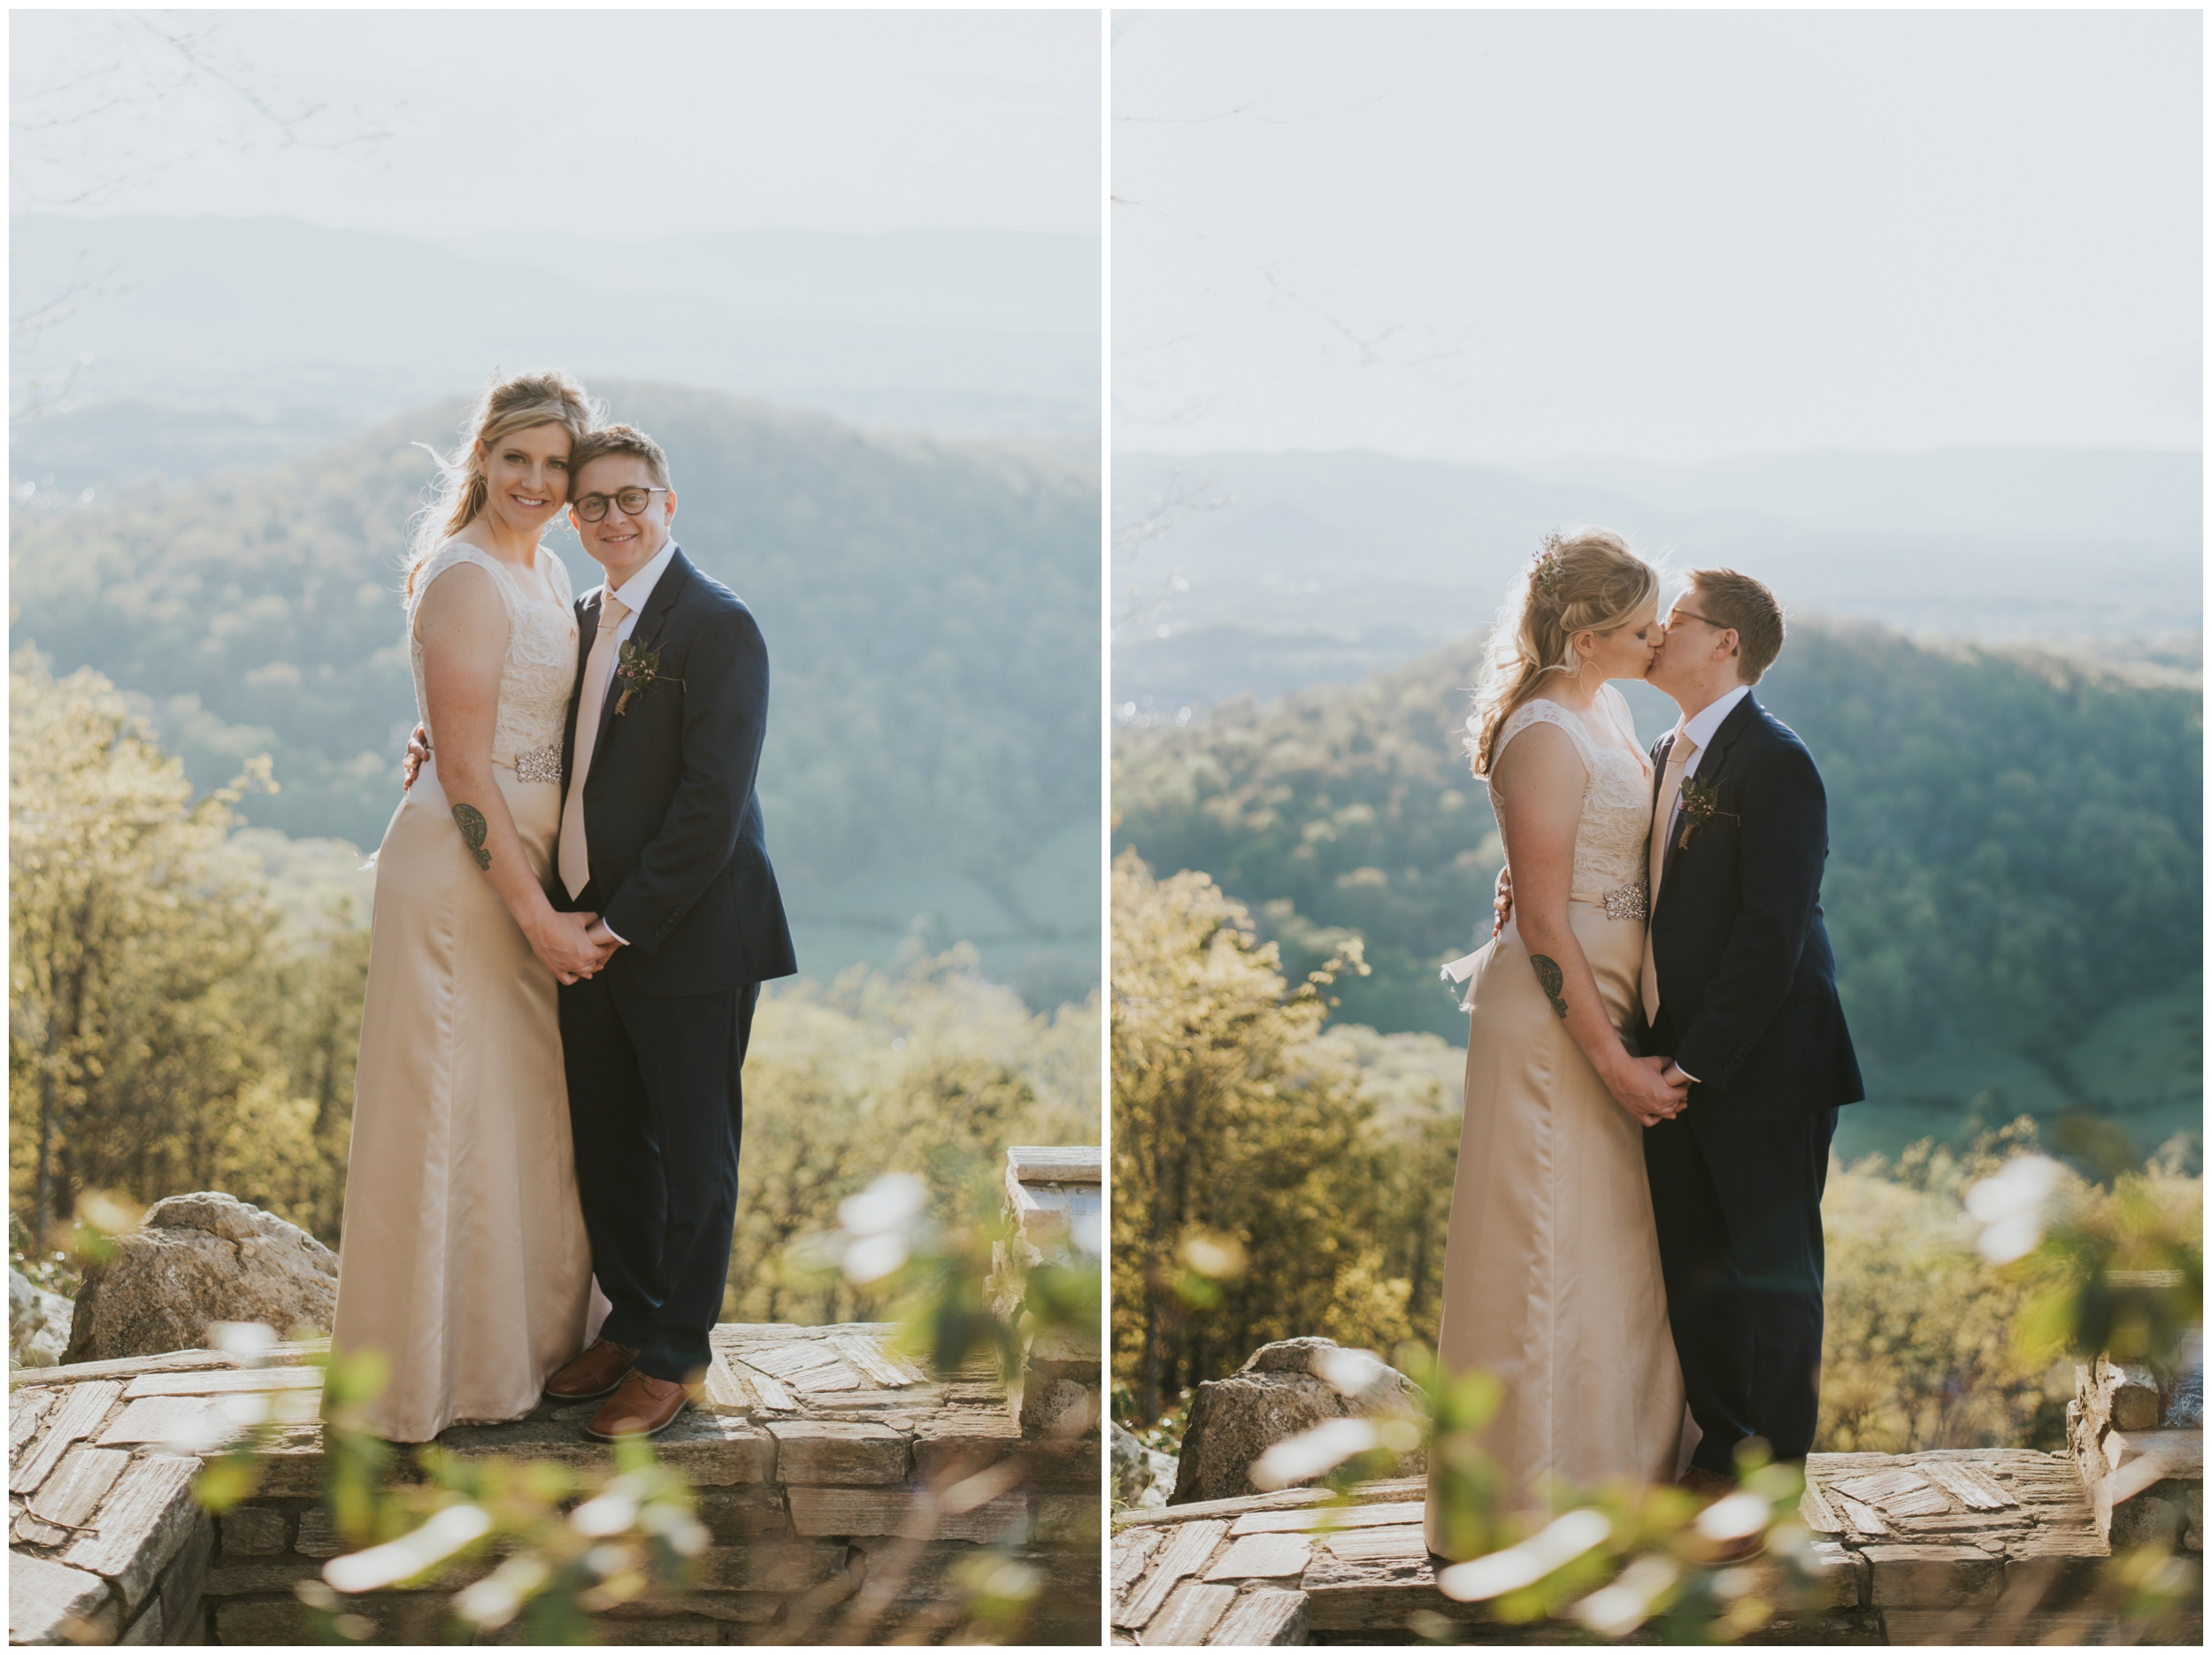 Roanoke Mountain Overlook Wedding Photographer  | www.riversandroadsphotography.com